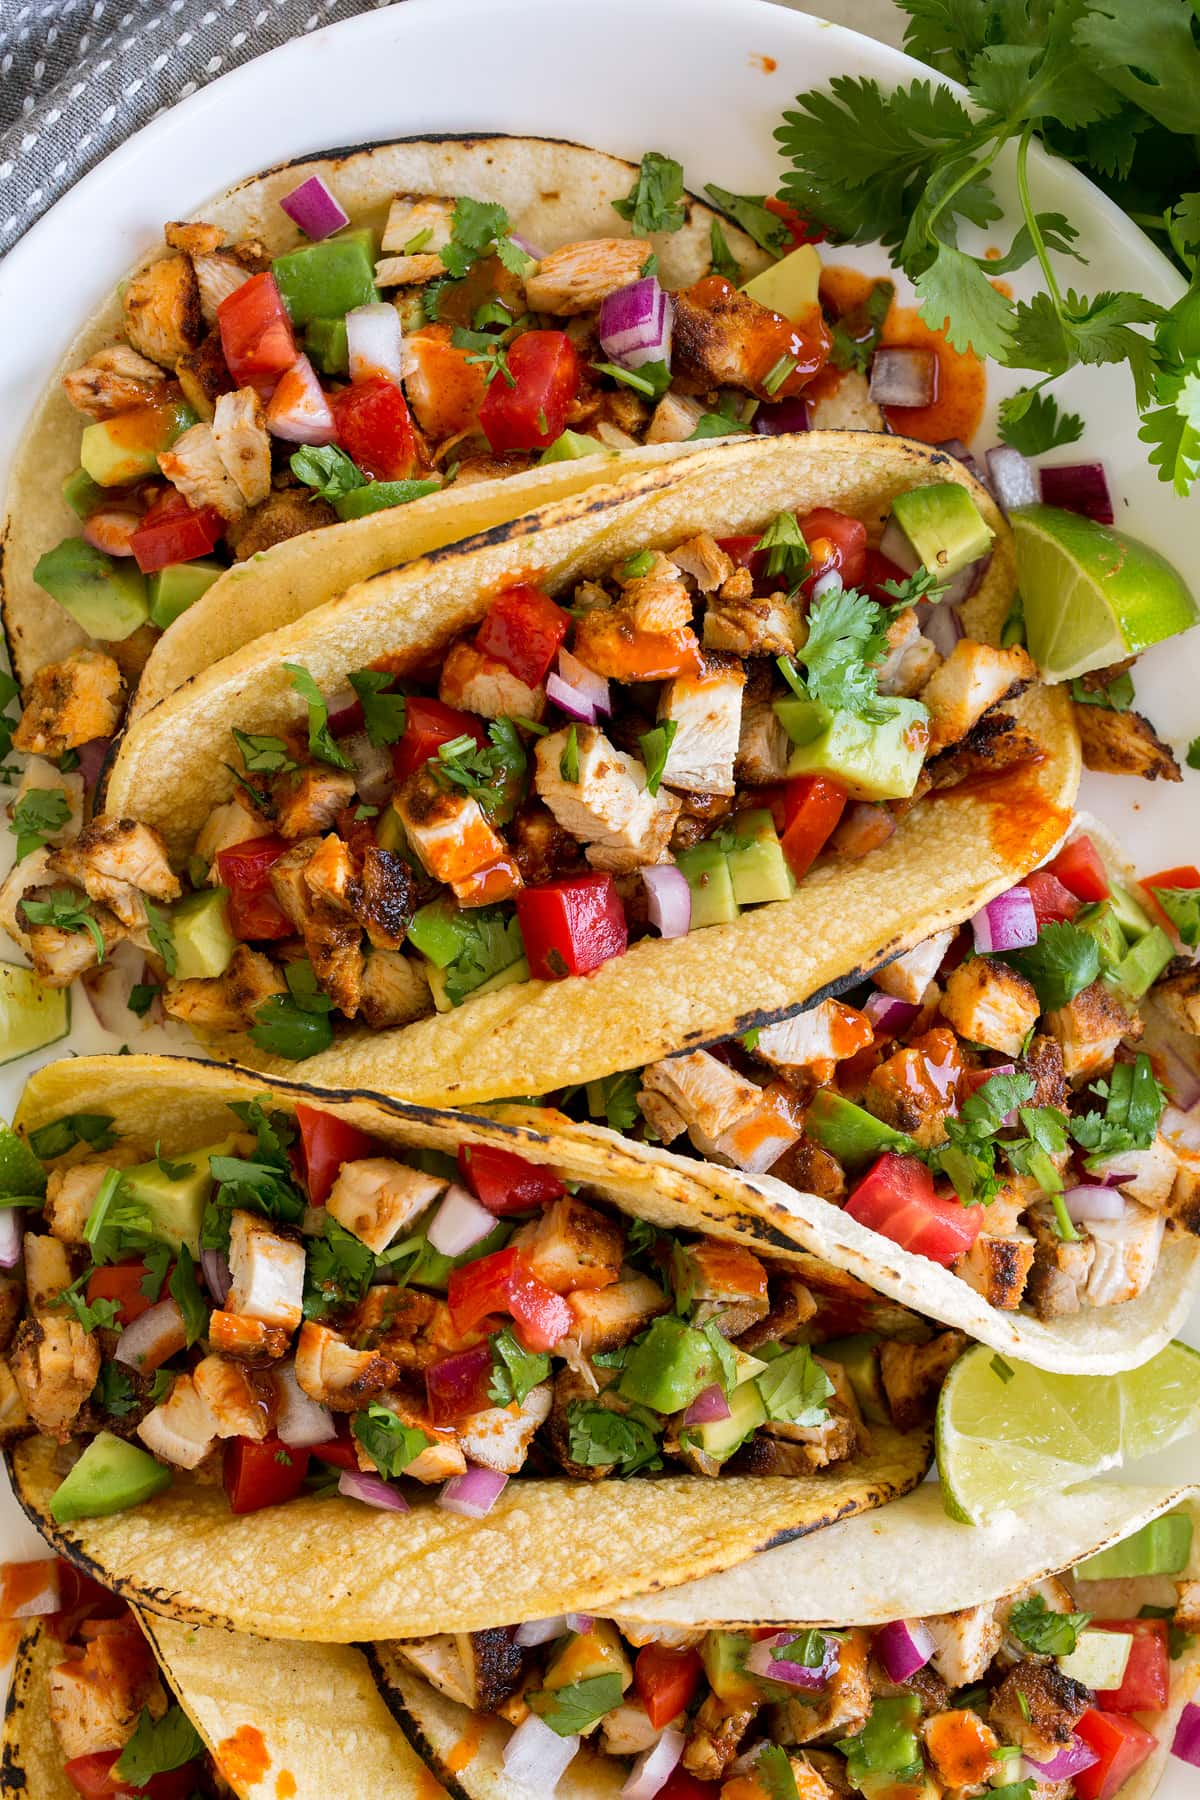 Chicken Tacos - Cooking Classy